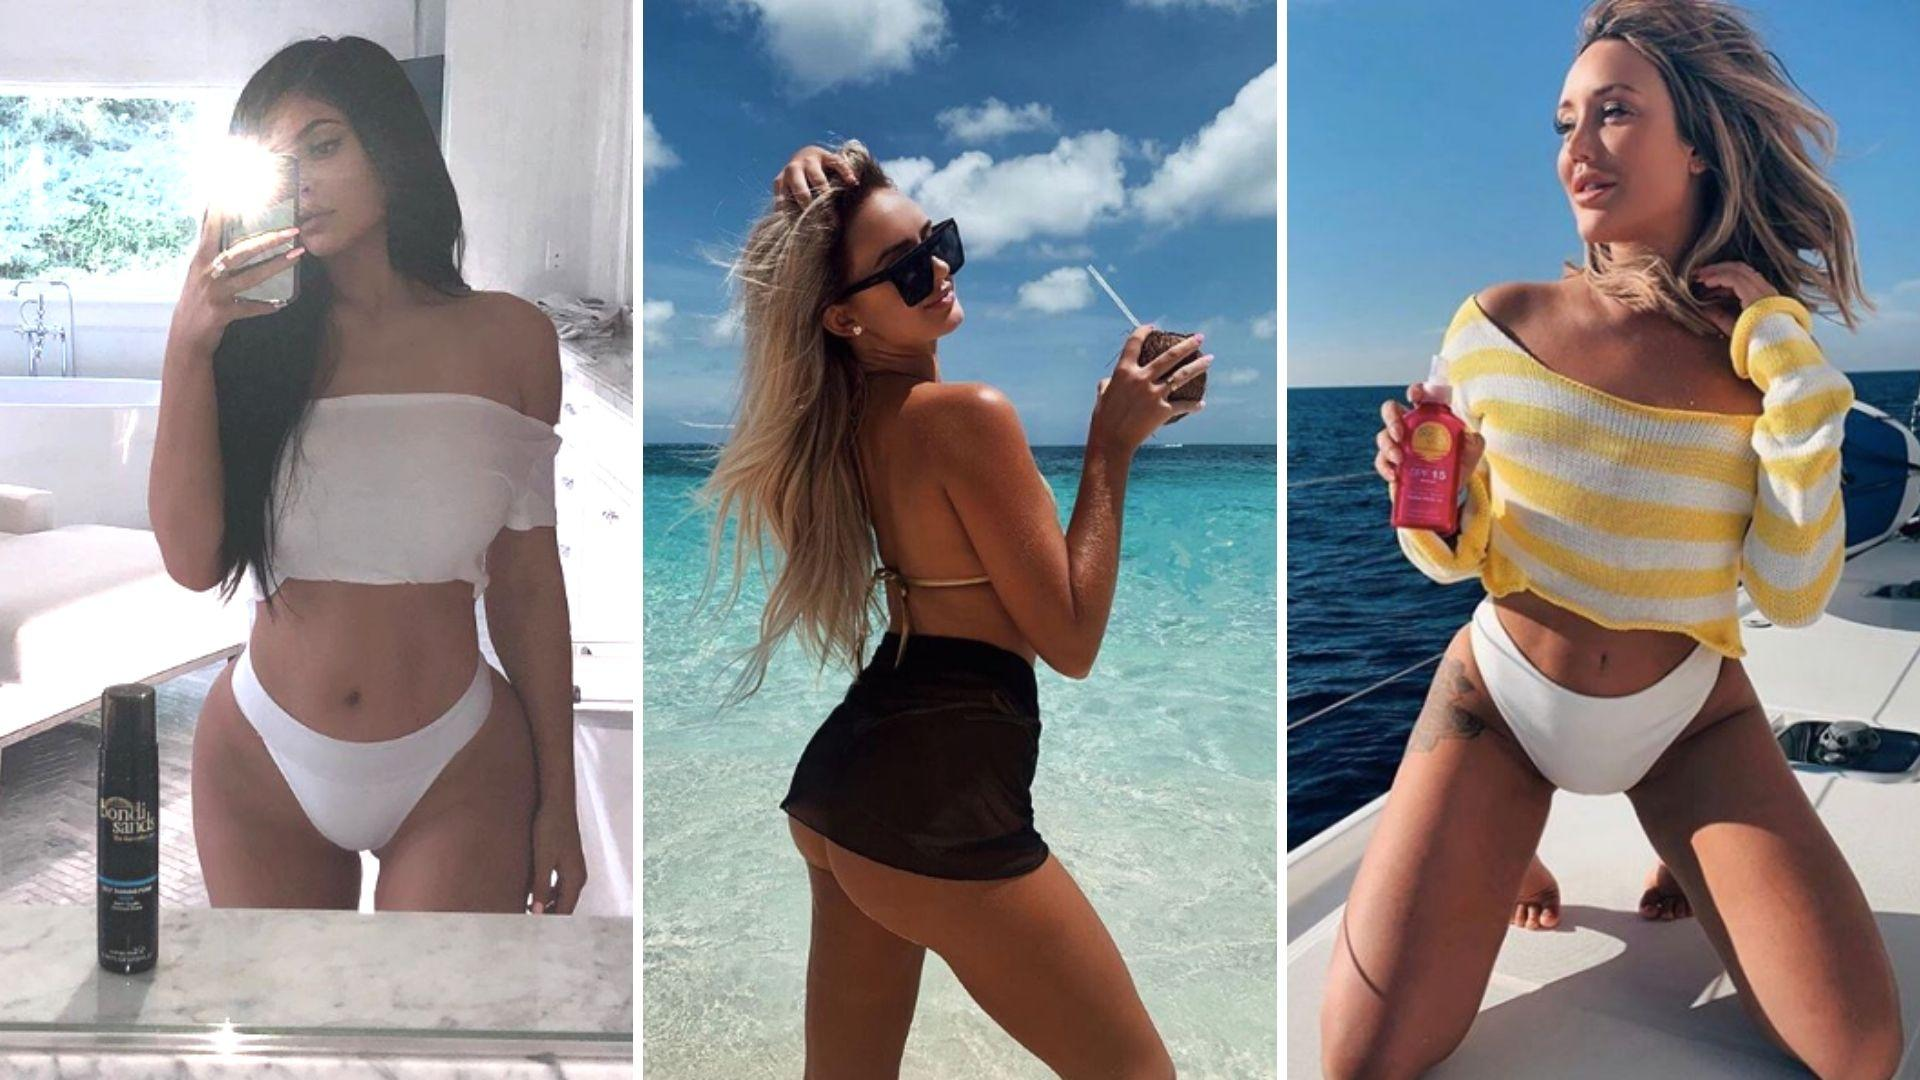 'Micro', 'nano' and 'mega' influencers: Why you need to know what these mean